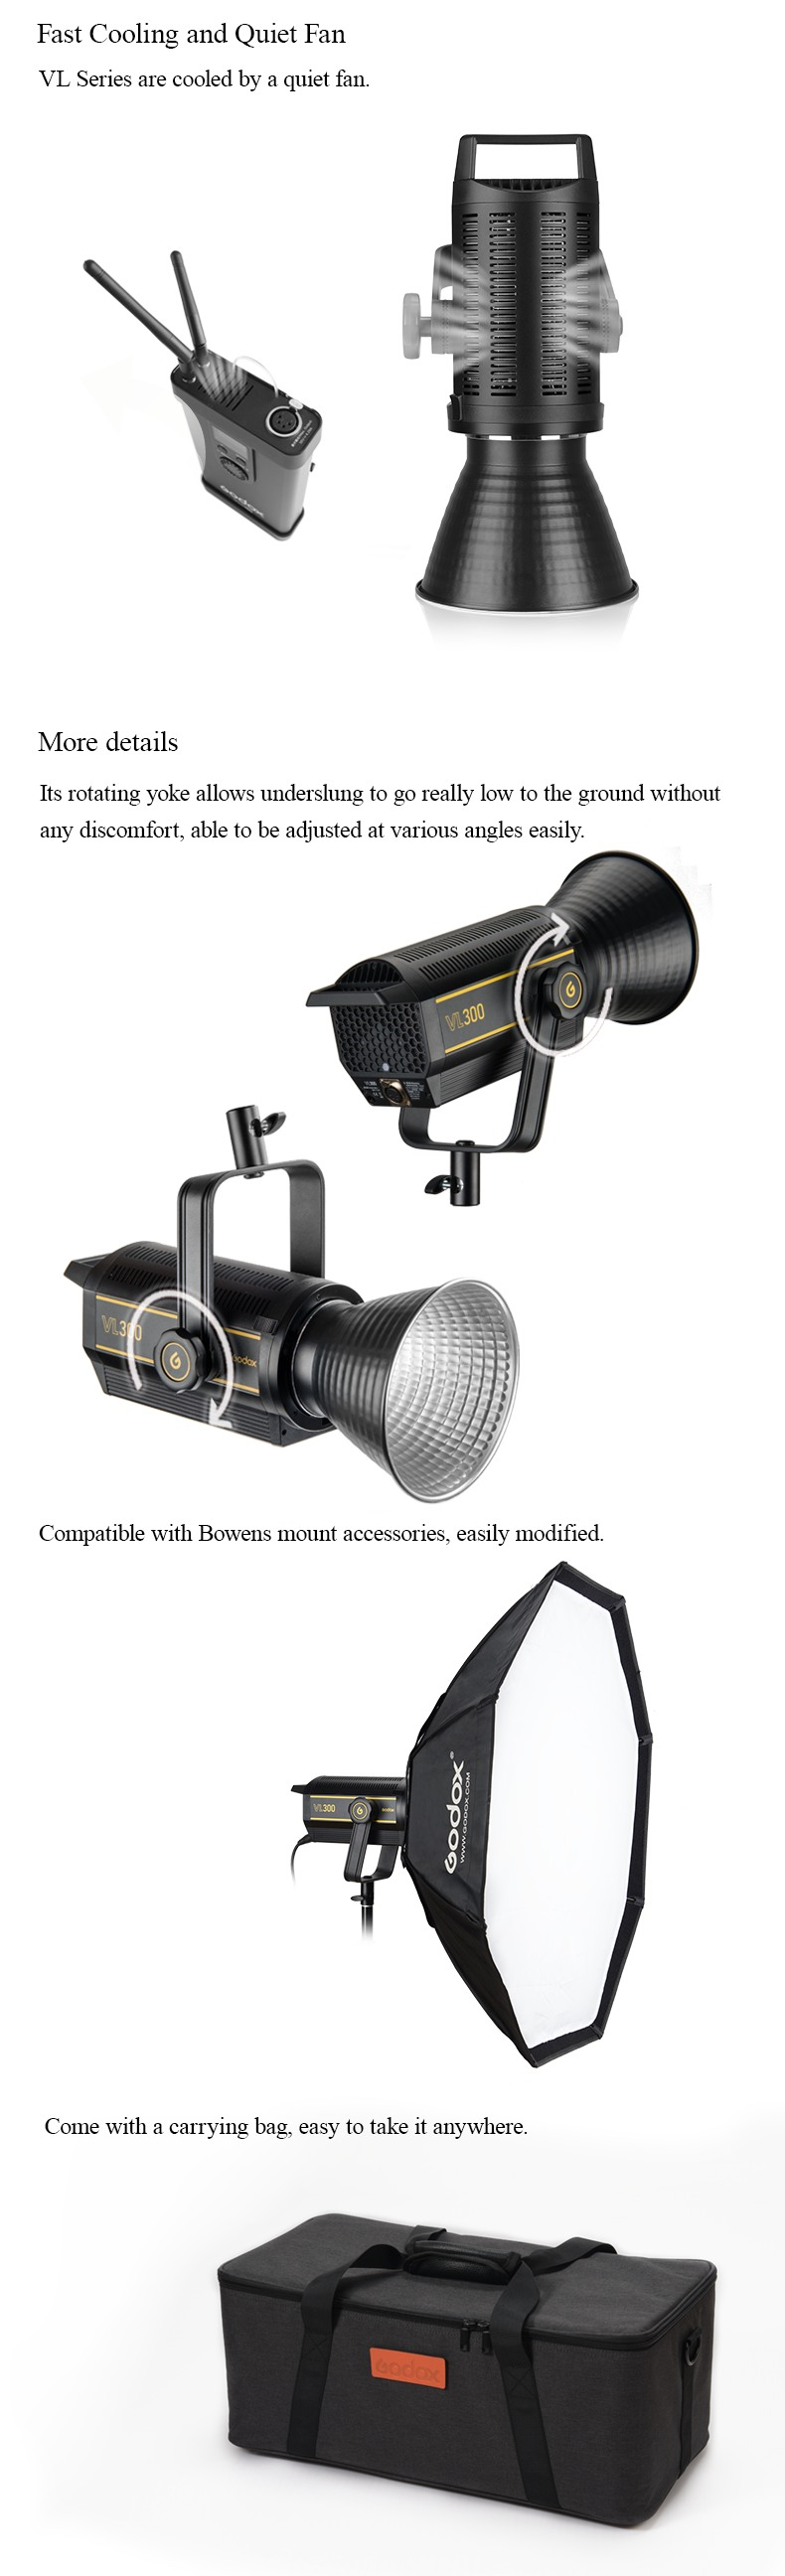 Godox VL series accesories, softboxes, bags, cooling